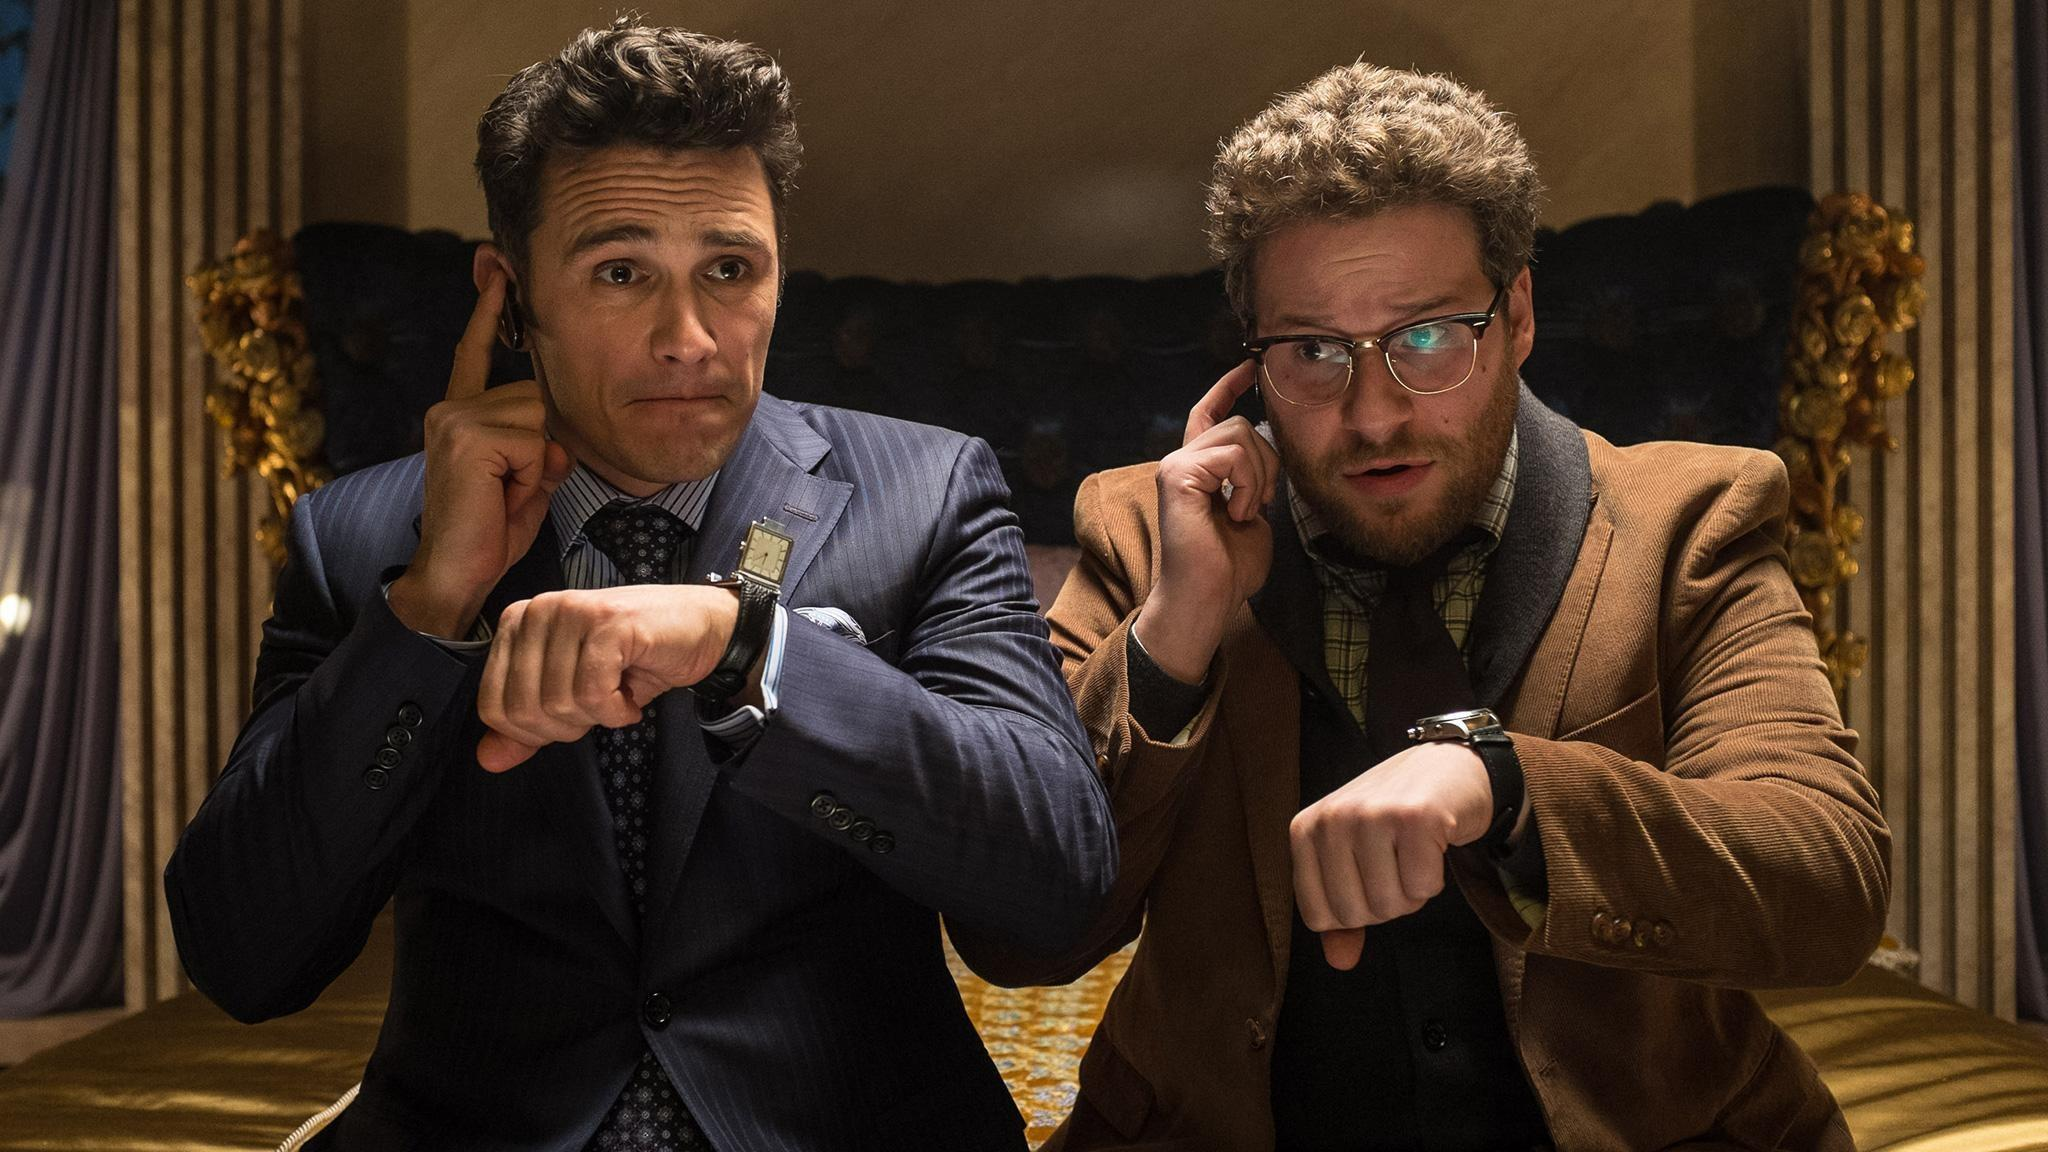 Hollywood Reacts To 'The Interview' Release Being Cancelled http://t.co/YZuYyceUy2 http://t.co/NWOSfGwzqk